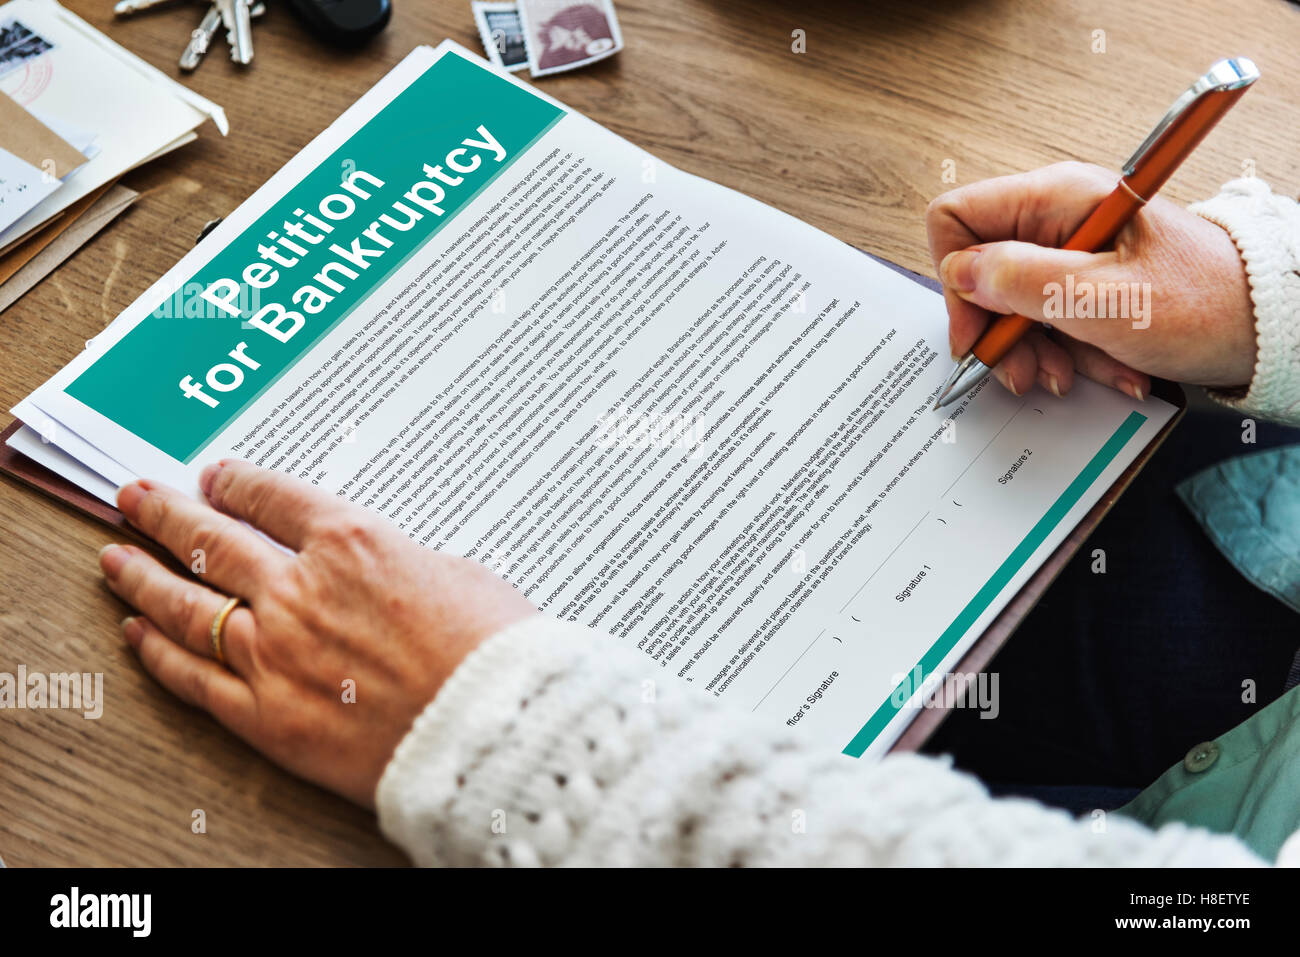 Petition Bankruptcy Debt Loan Overdrawn Trouble Concept - Stock Image